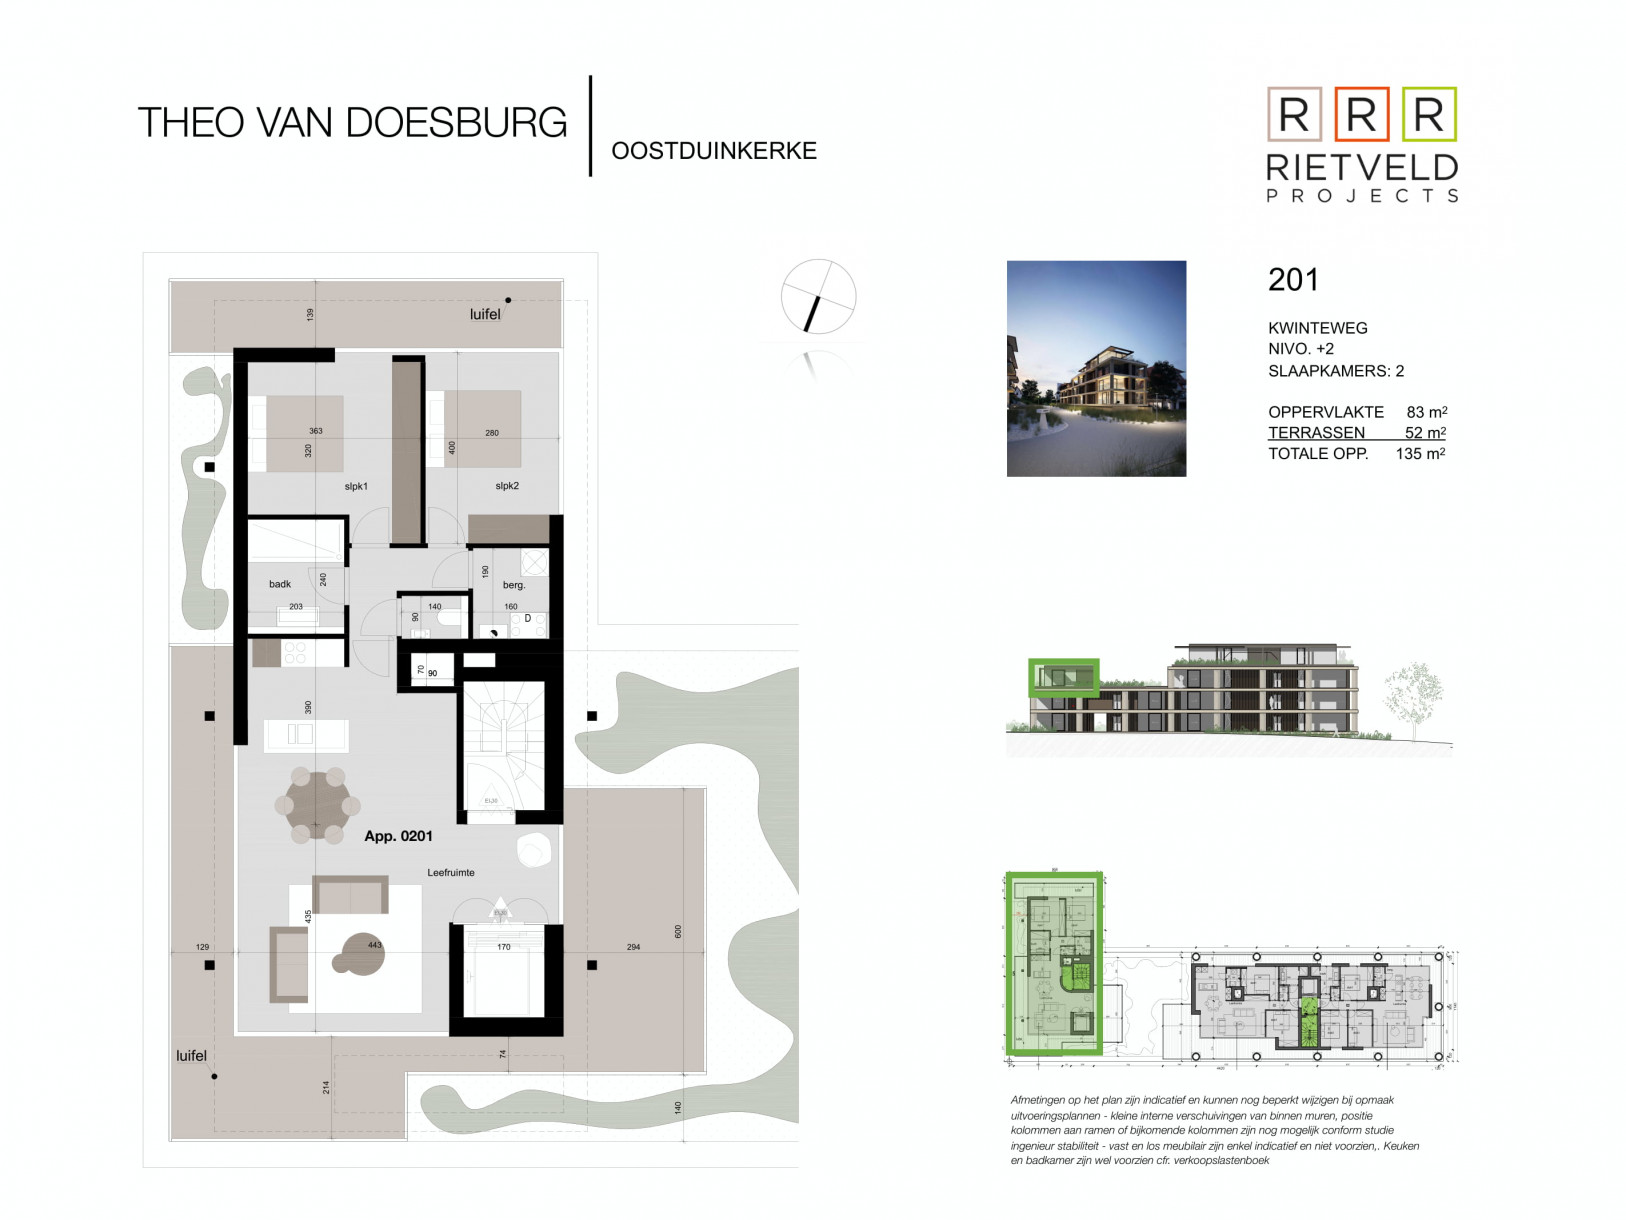 Theo van Doesburg - Rietveld Projects - Penthouse 0201.jpg